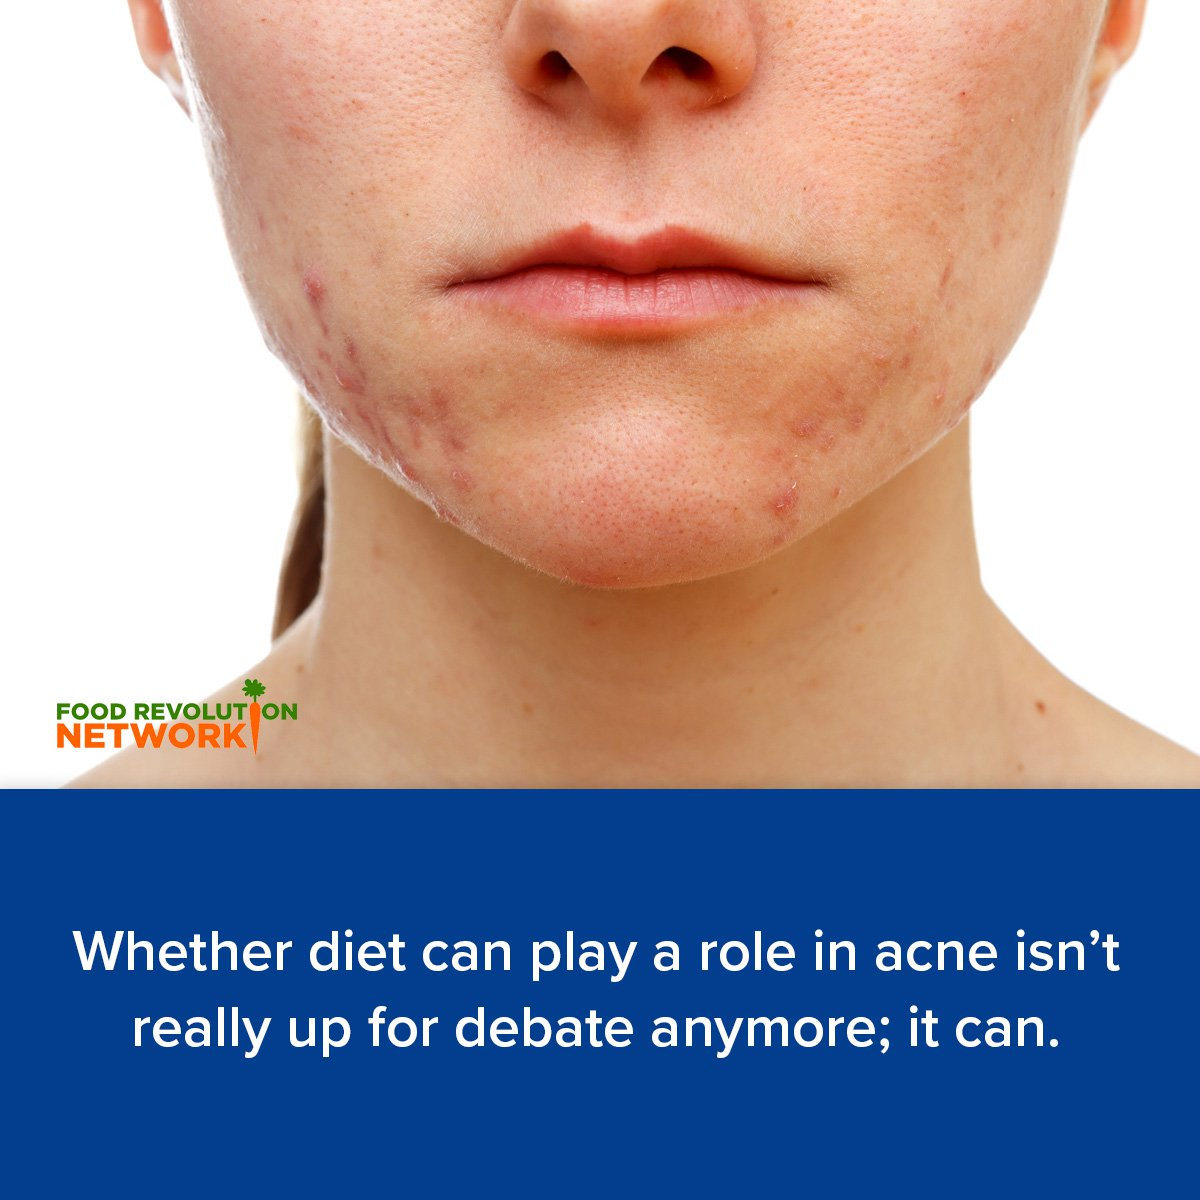 Whether diet can play a role in acne isn't really up for debate anymore; it can.